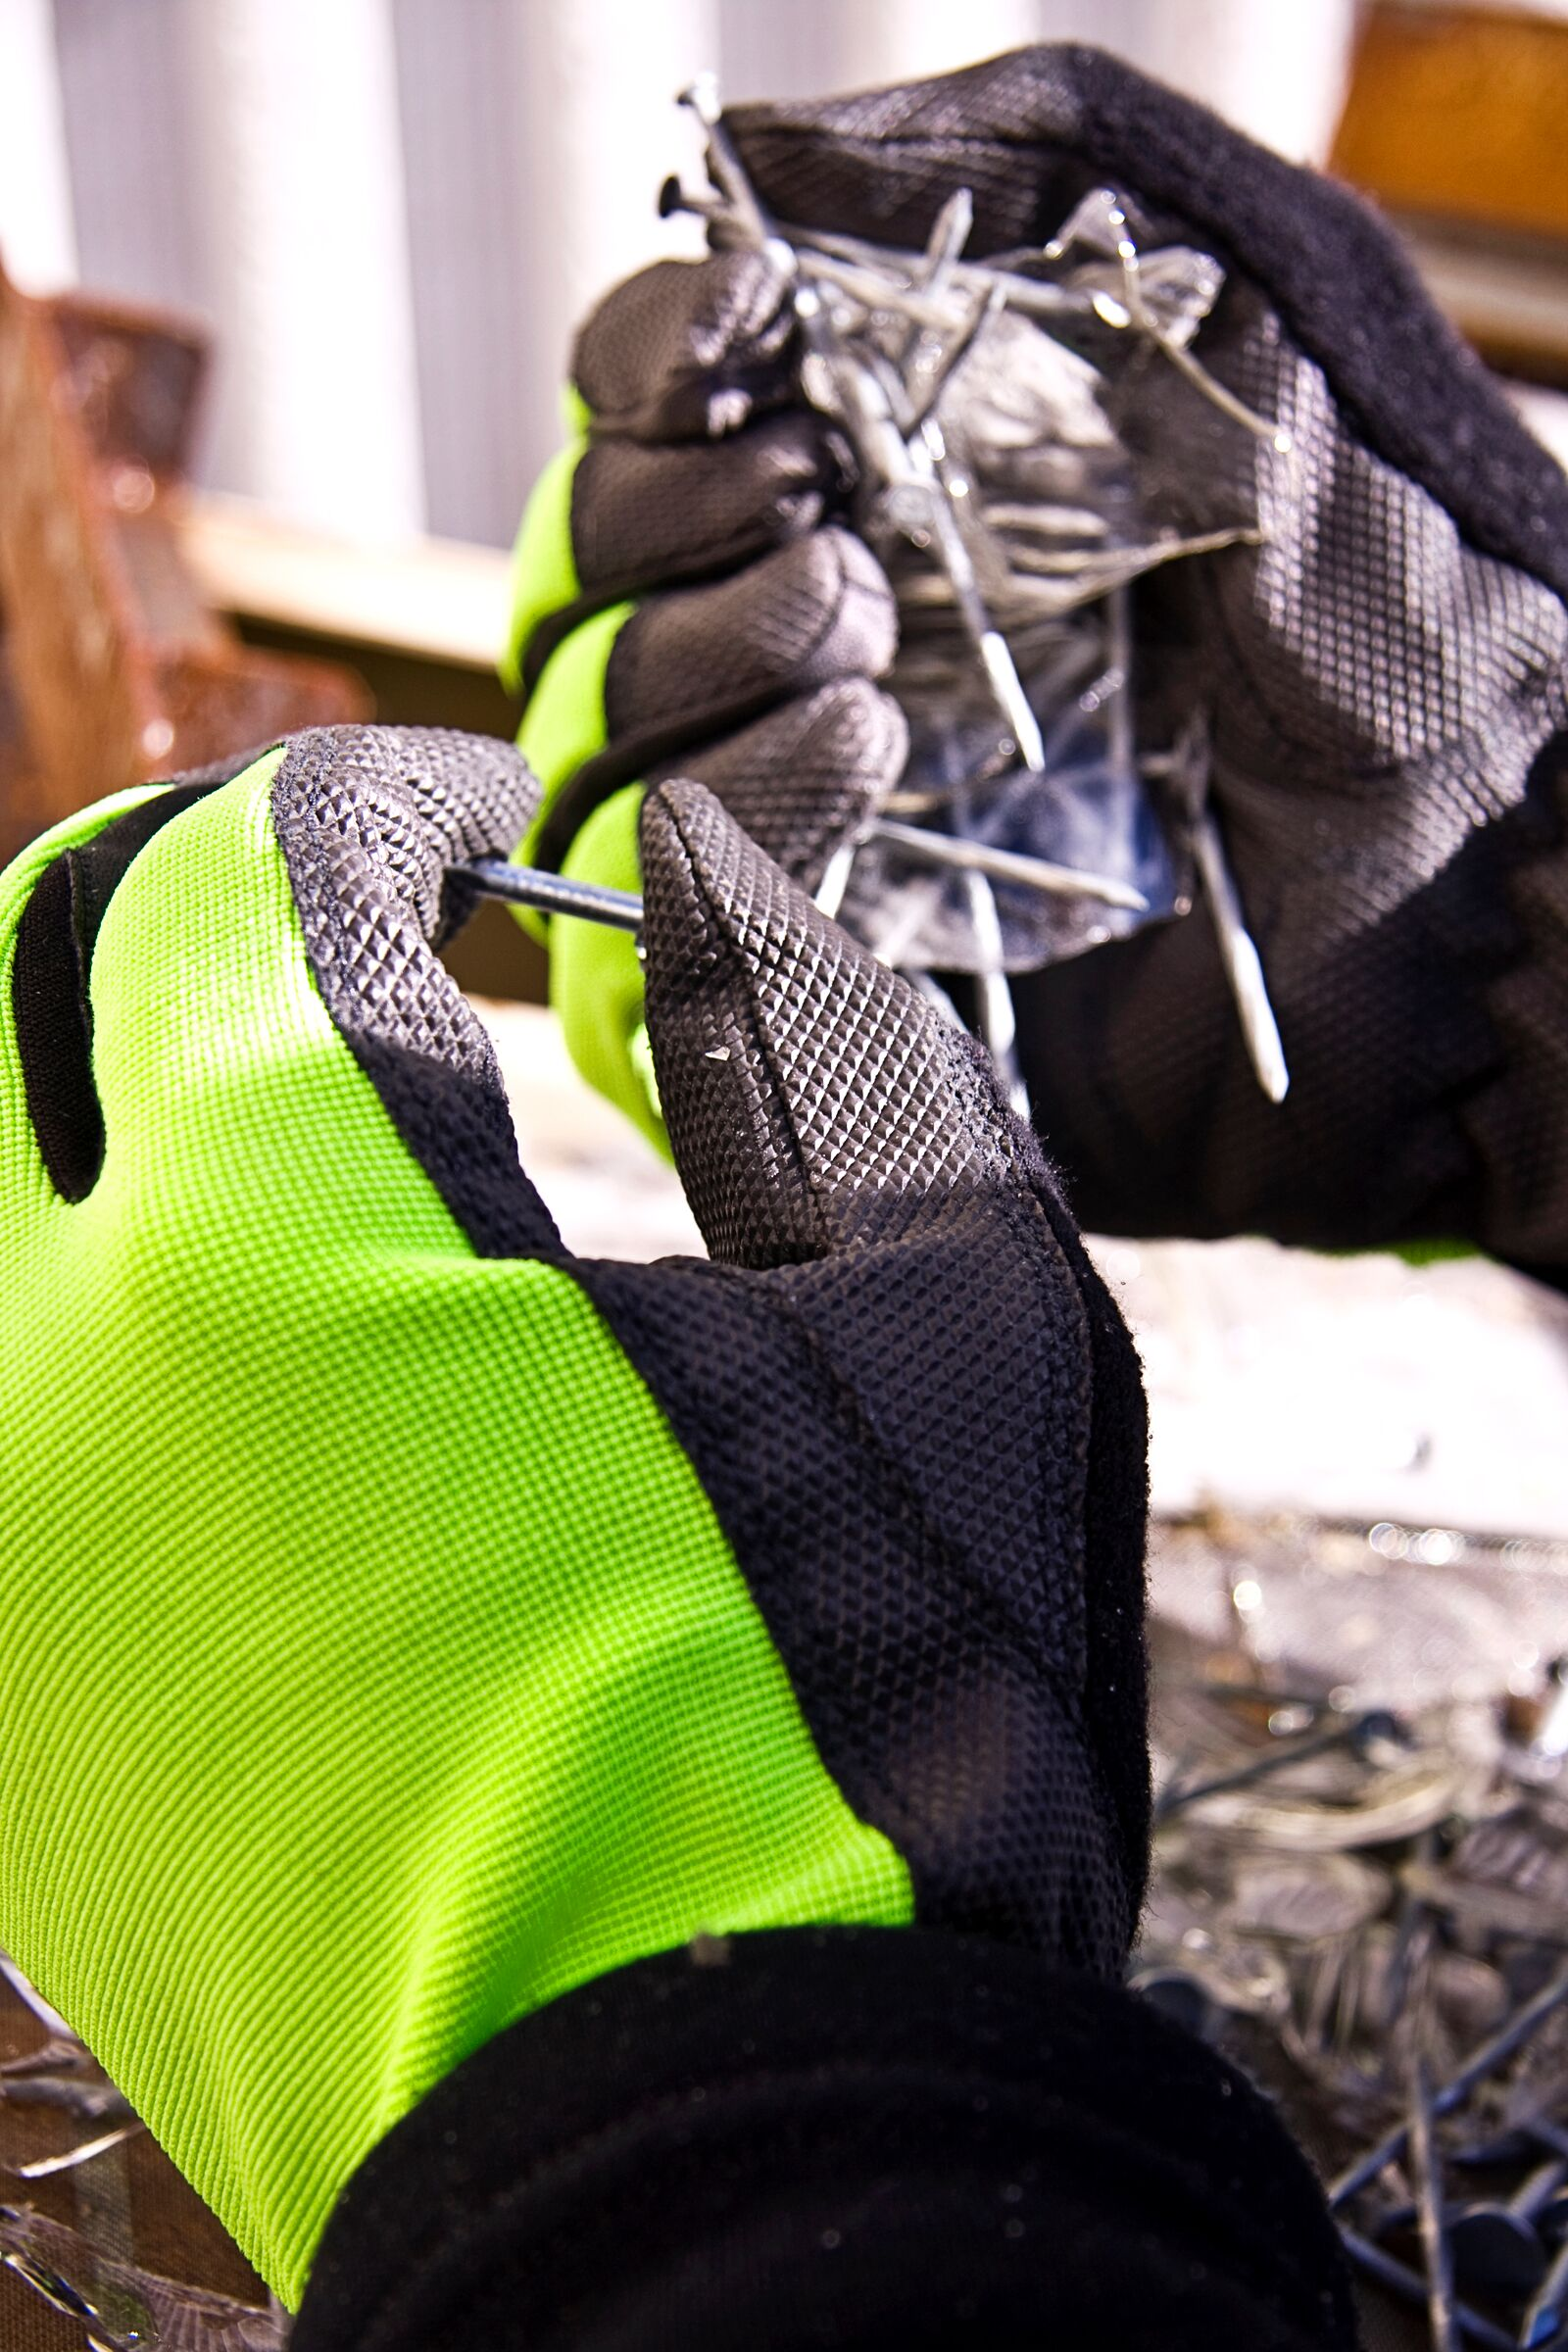 #MXHVPB Superior Glove® Clutch Gear® Mechanics Hi-Viz Punkban™ Gloves